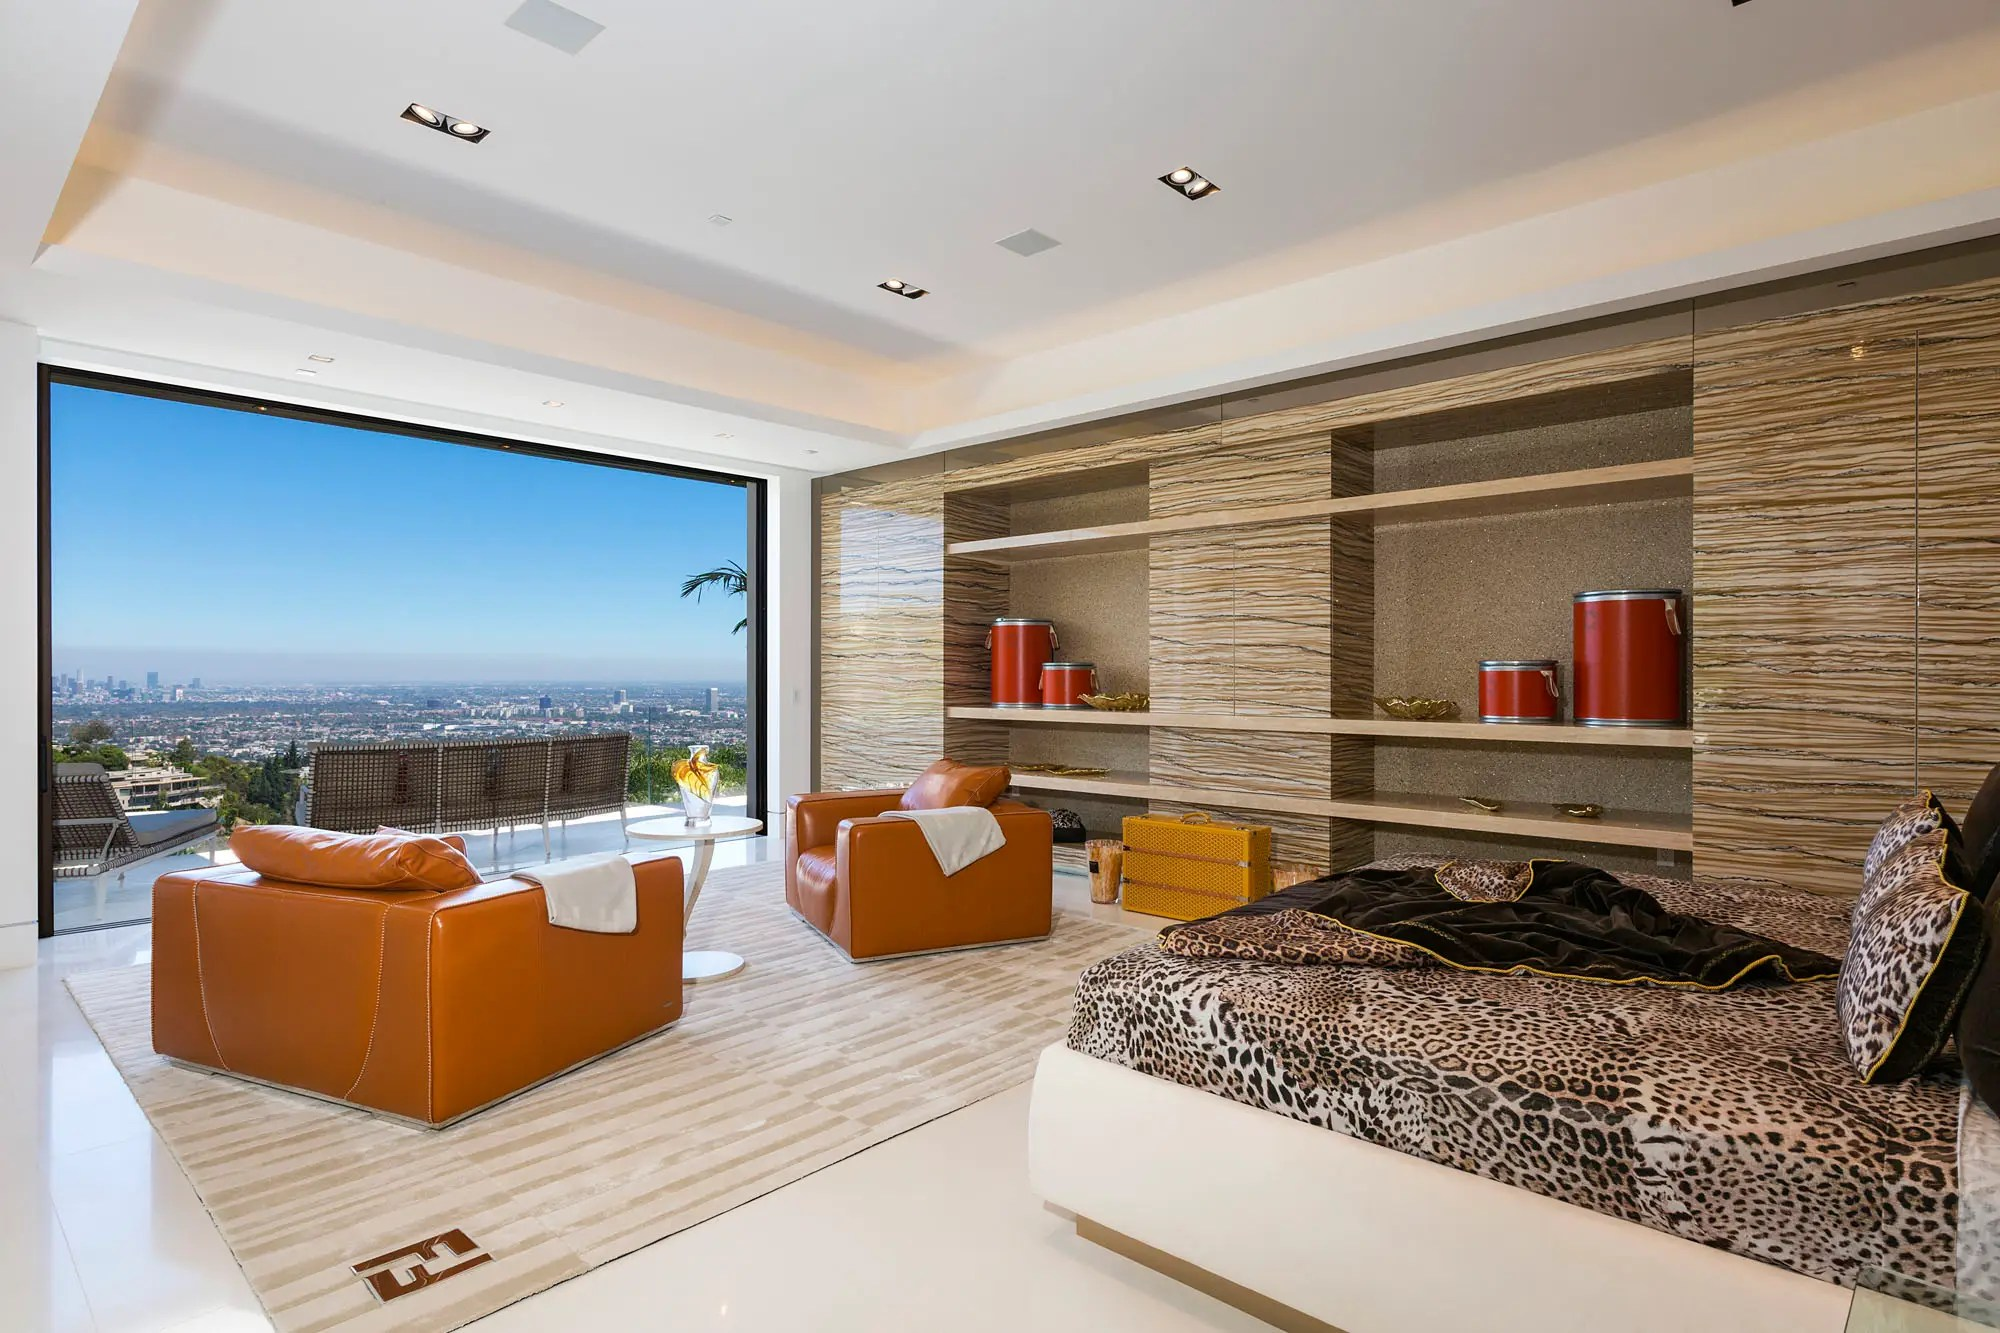 The master bedroom has ample space and a huge floor-to-ceiling window.